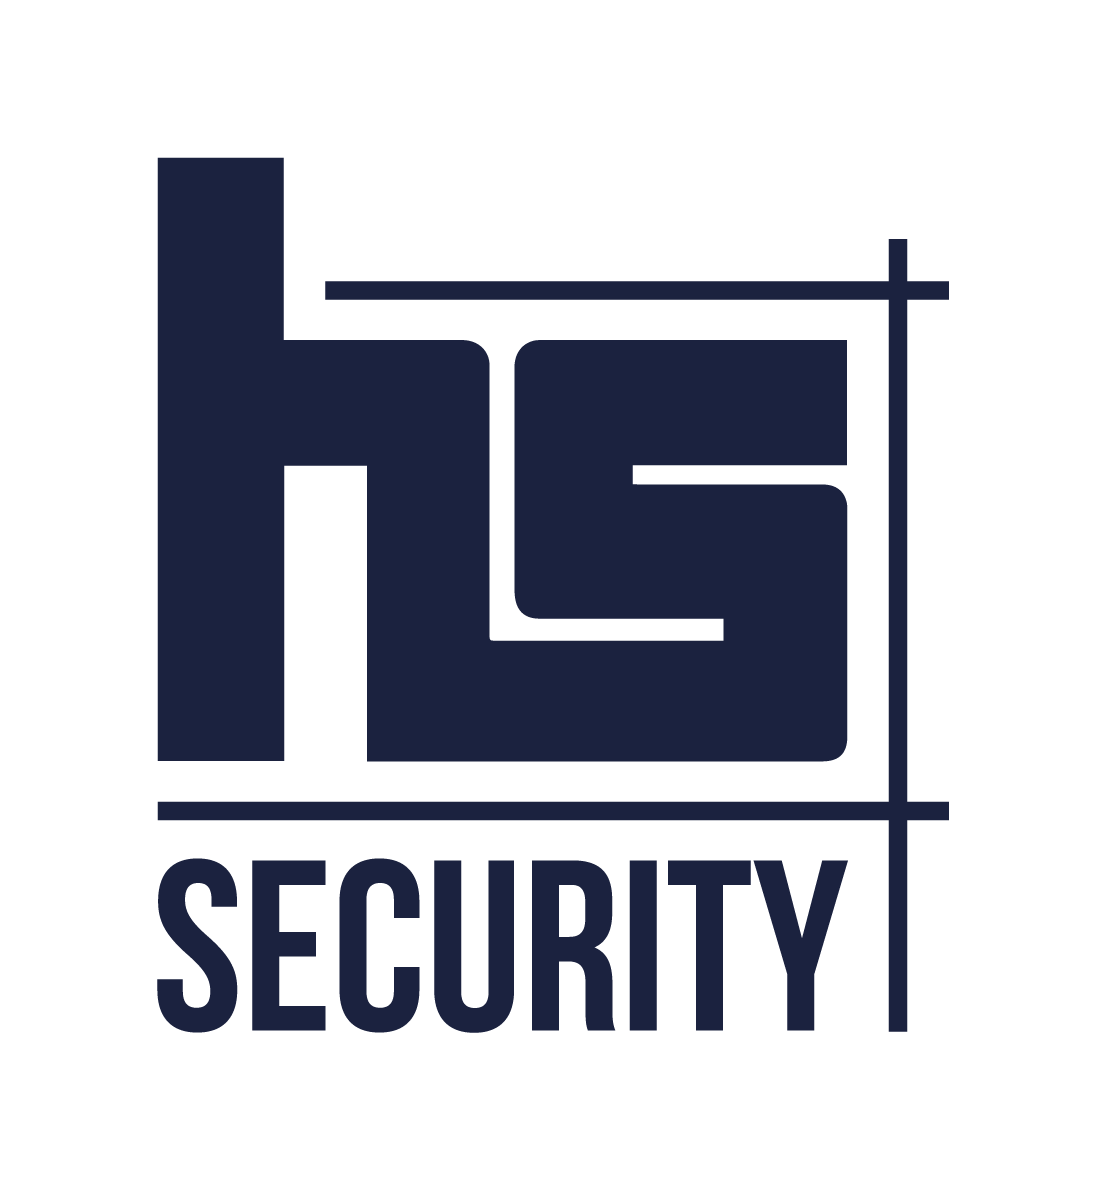 HS Security Group